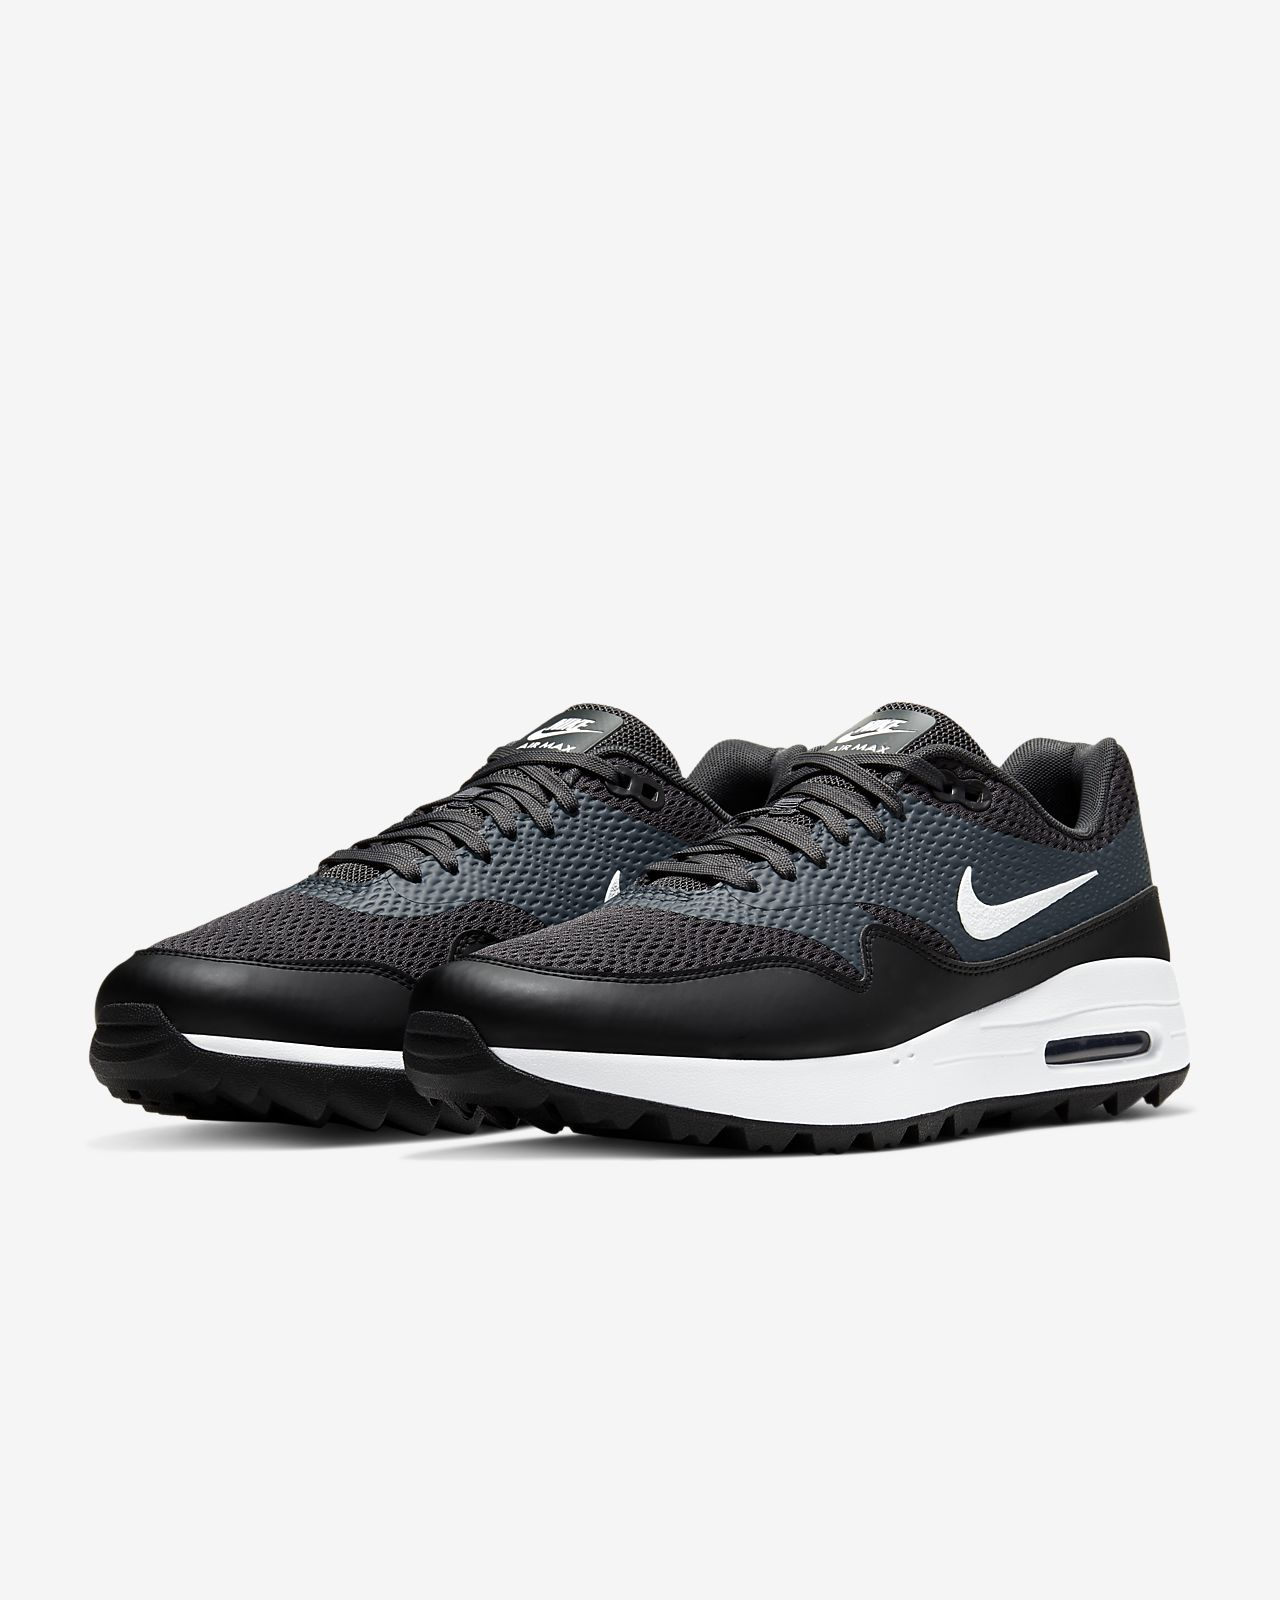 Nike Men's Air Max 1g Golf Shoes Outlet Shop, UP TO 64% OFF